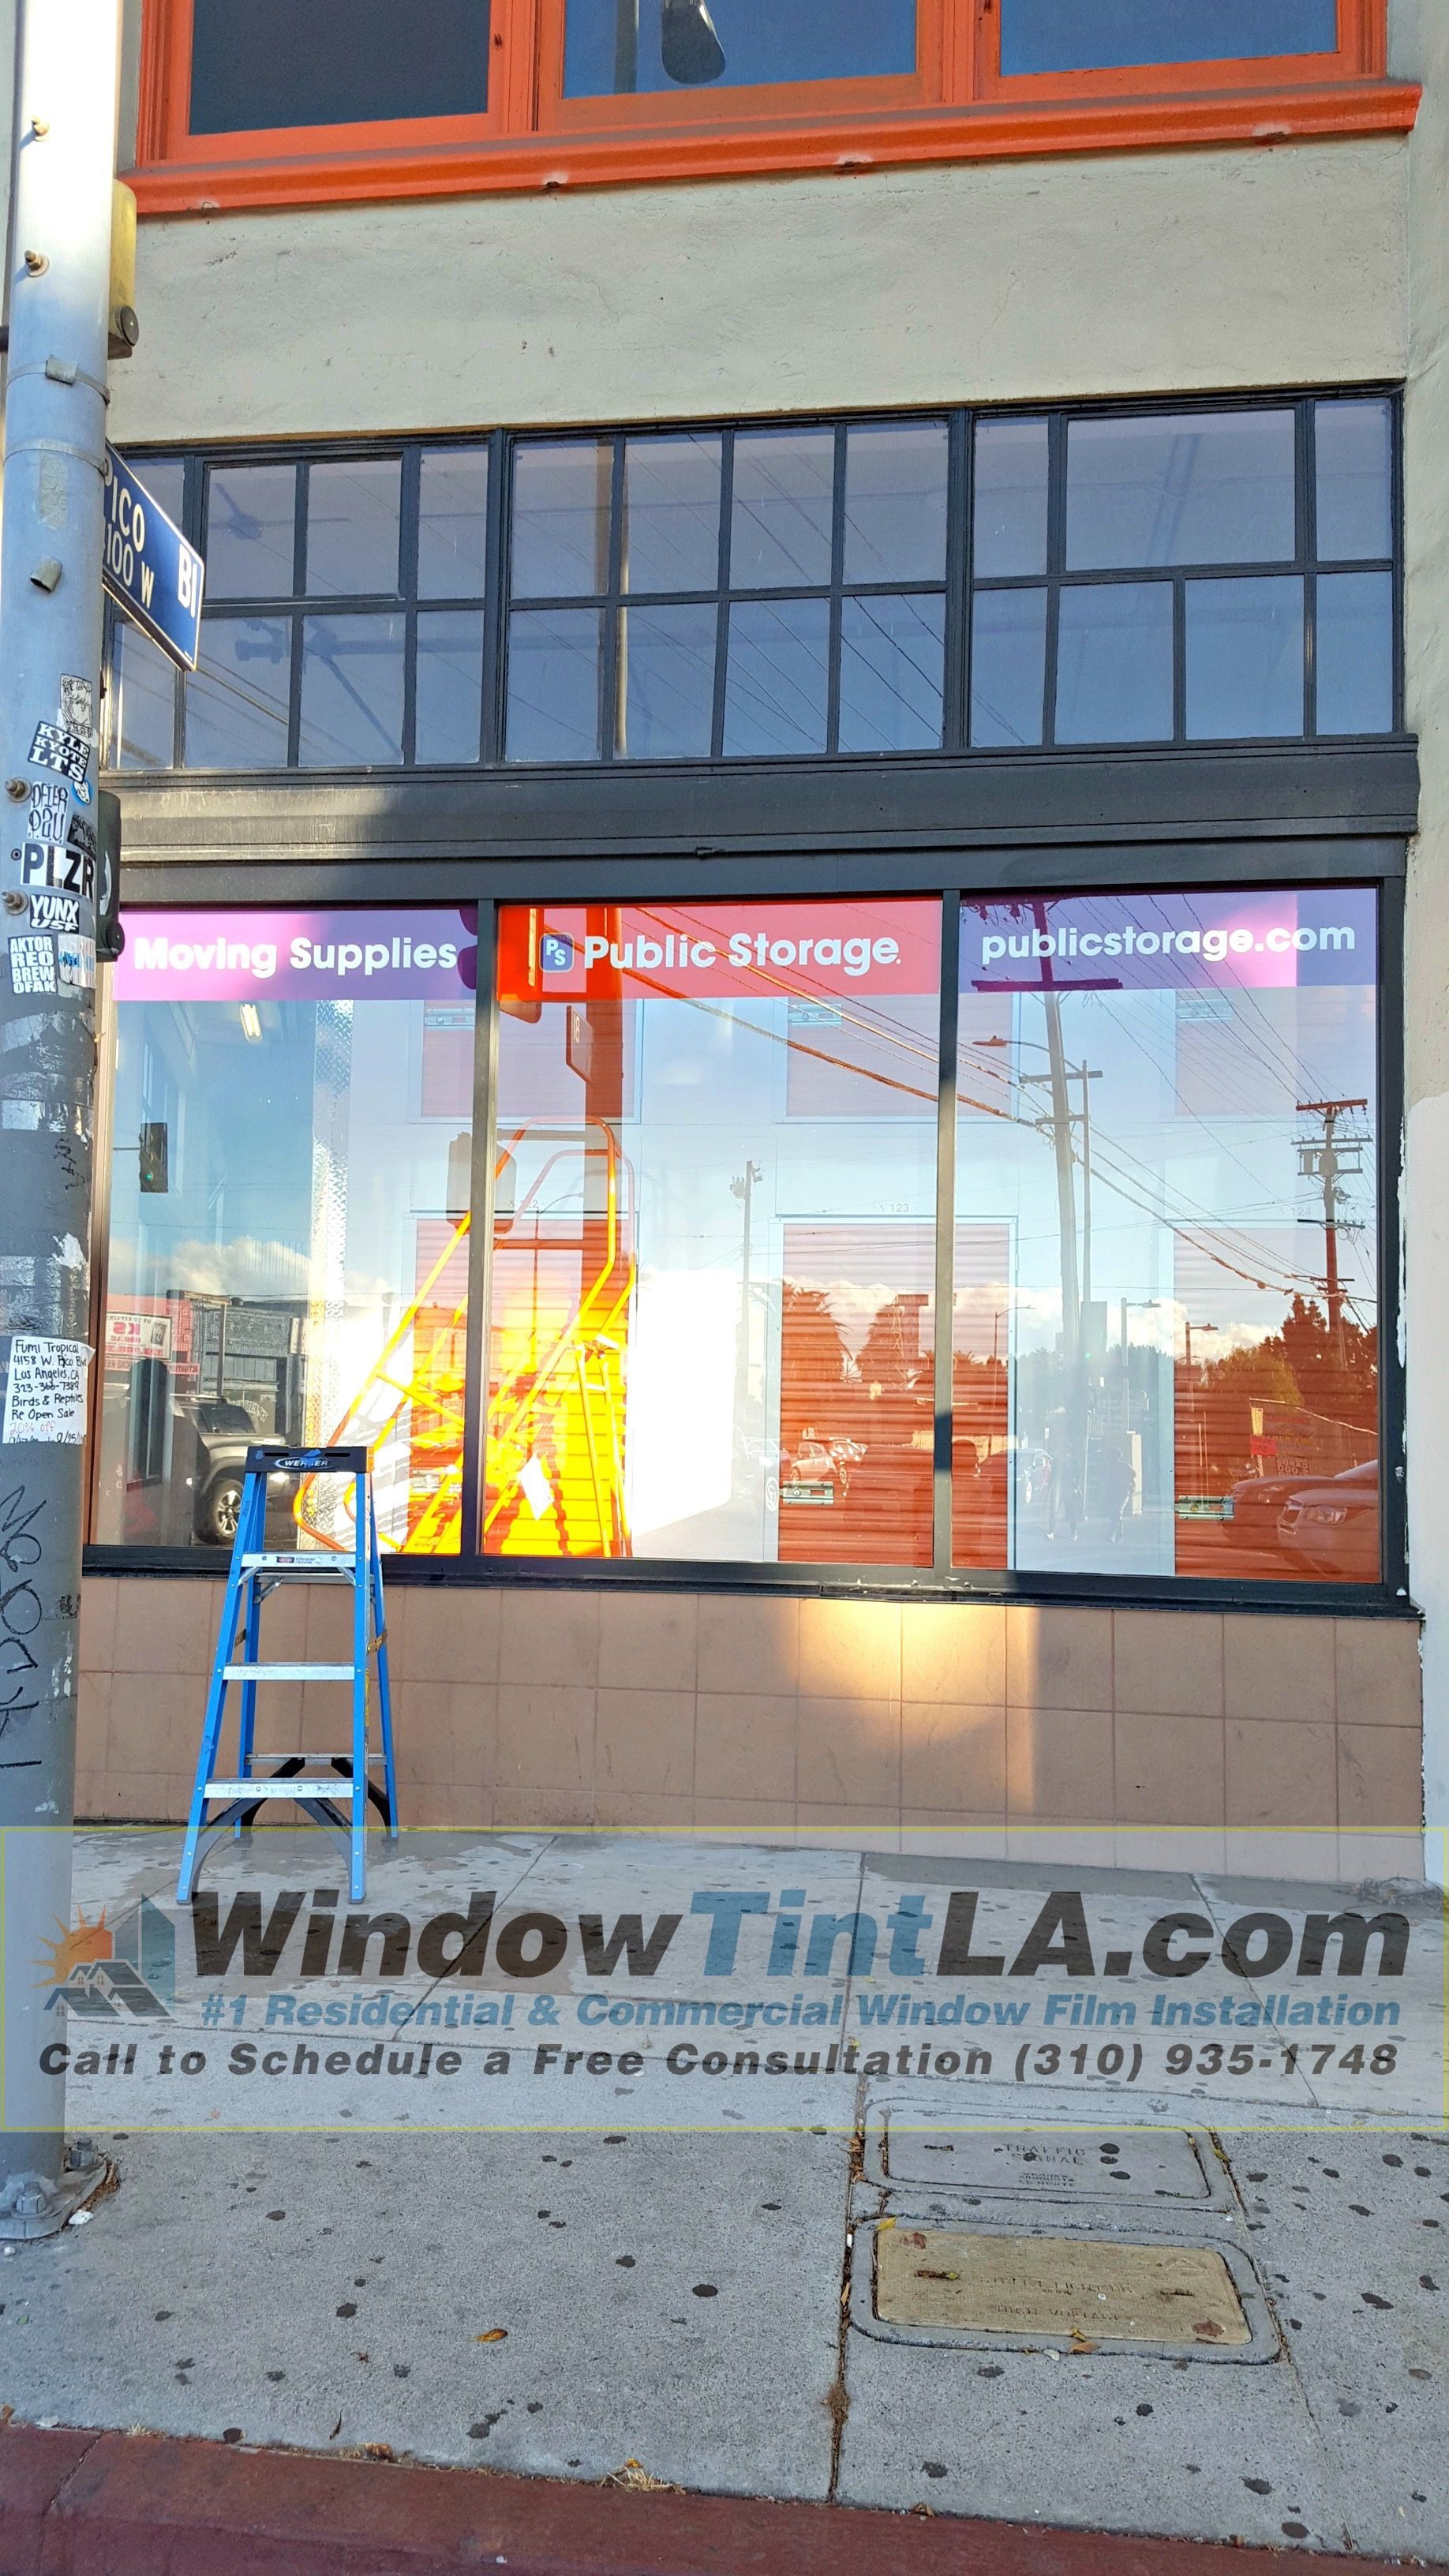 Pin By Window Tint La On Anti Graffiti Window Film Los Angeles Window Film Windows Film